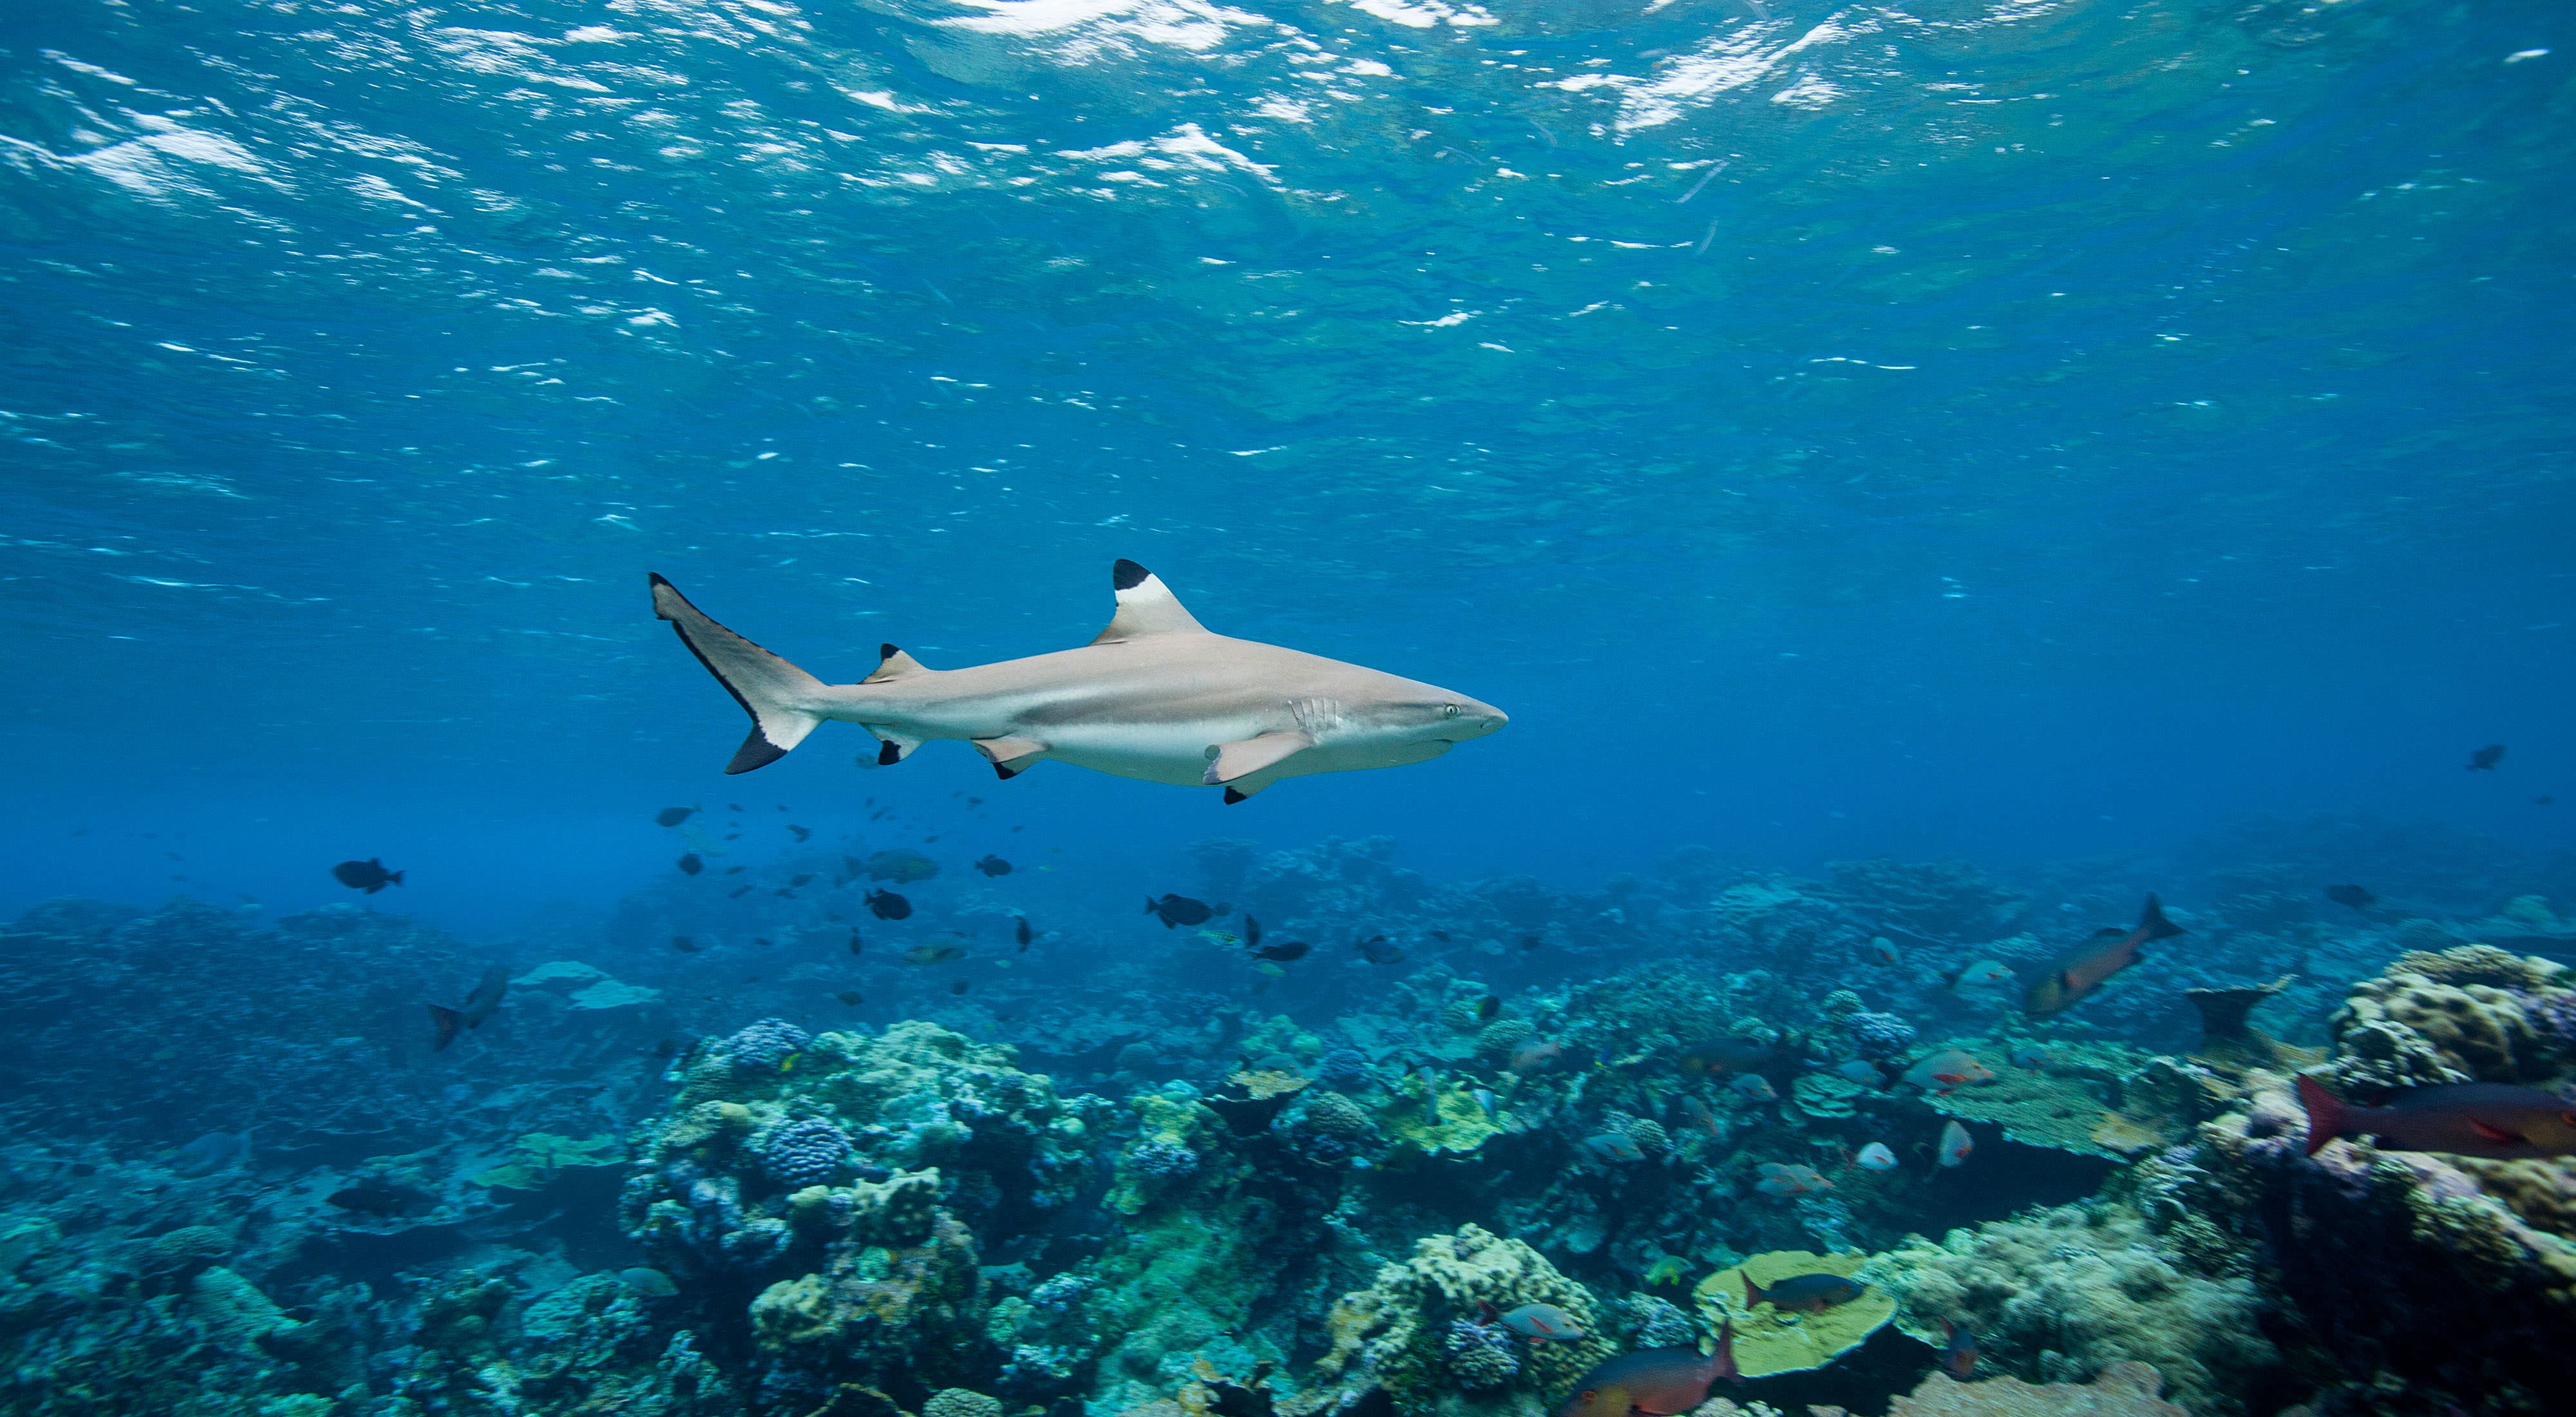 An adult blacktip shark cruises over Penguin Spit Reef, located near the atoll's western channel. Blacktips typically grow up to 5 feet long.